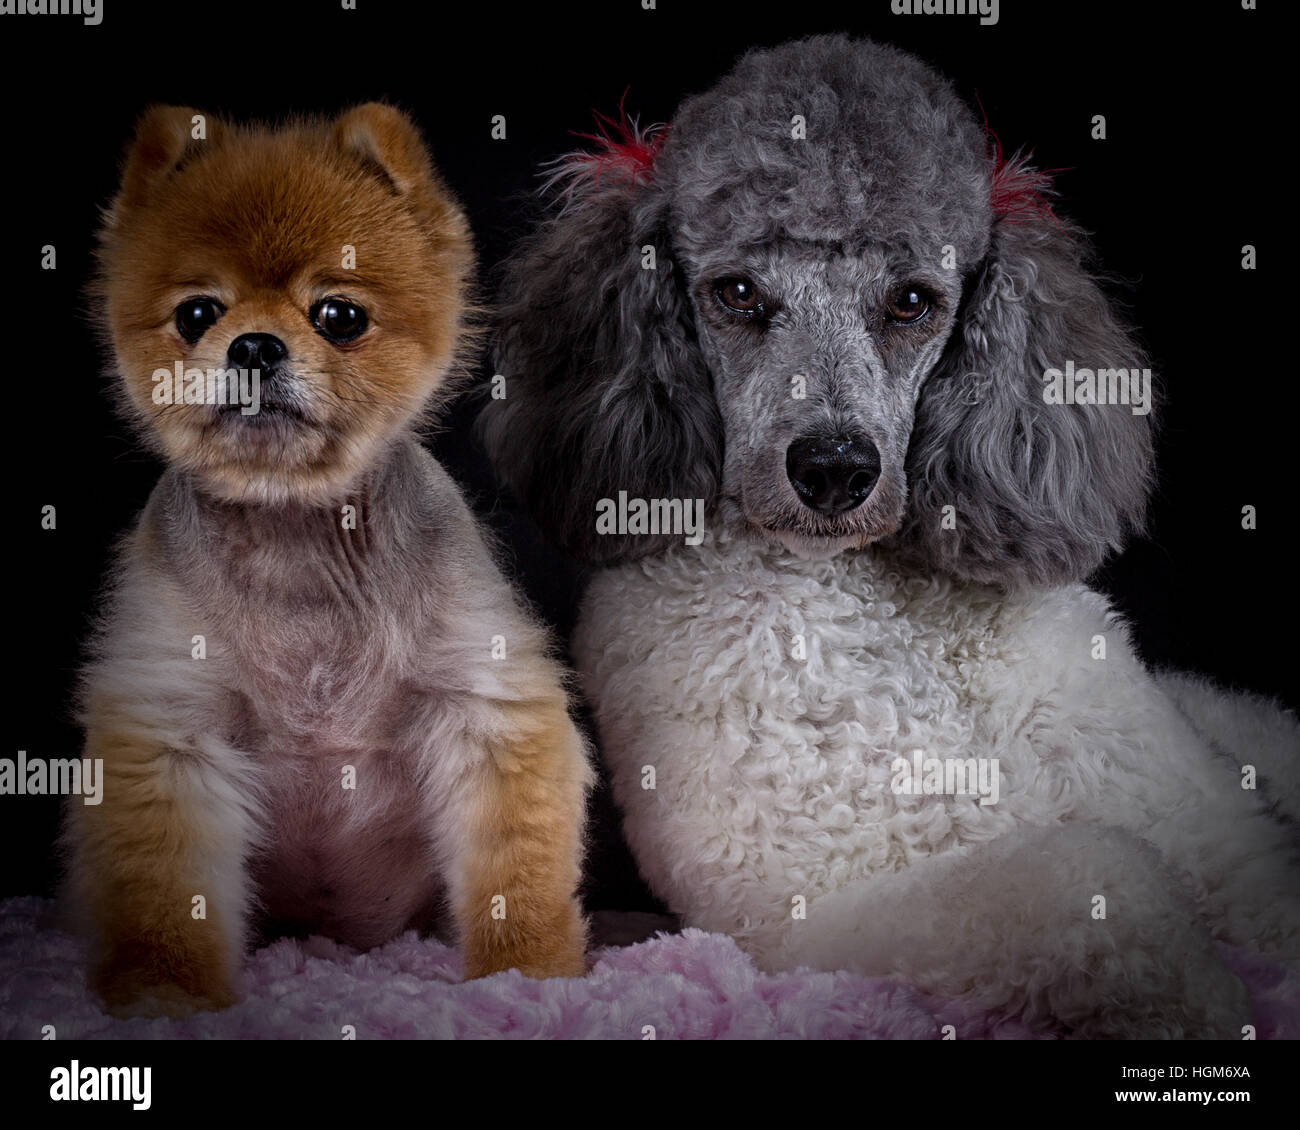 Pomeranian And Poodle Puppies Stock Photo Alamy